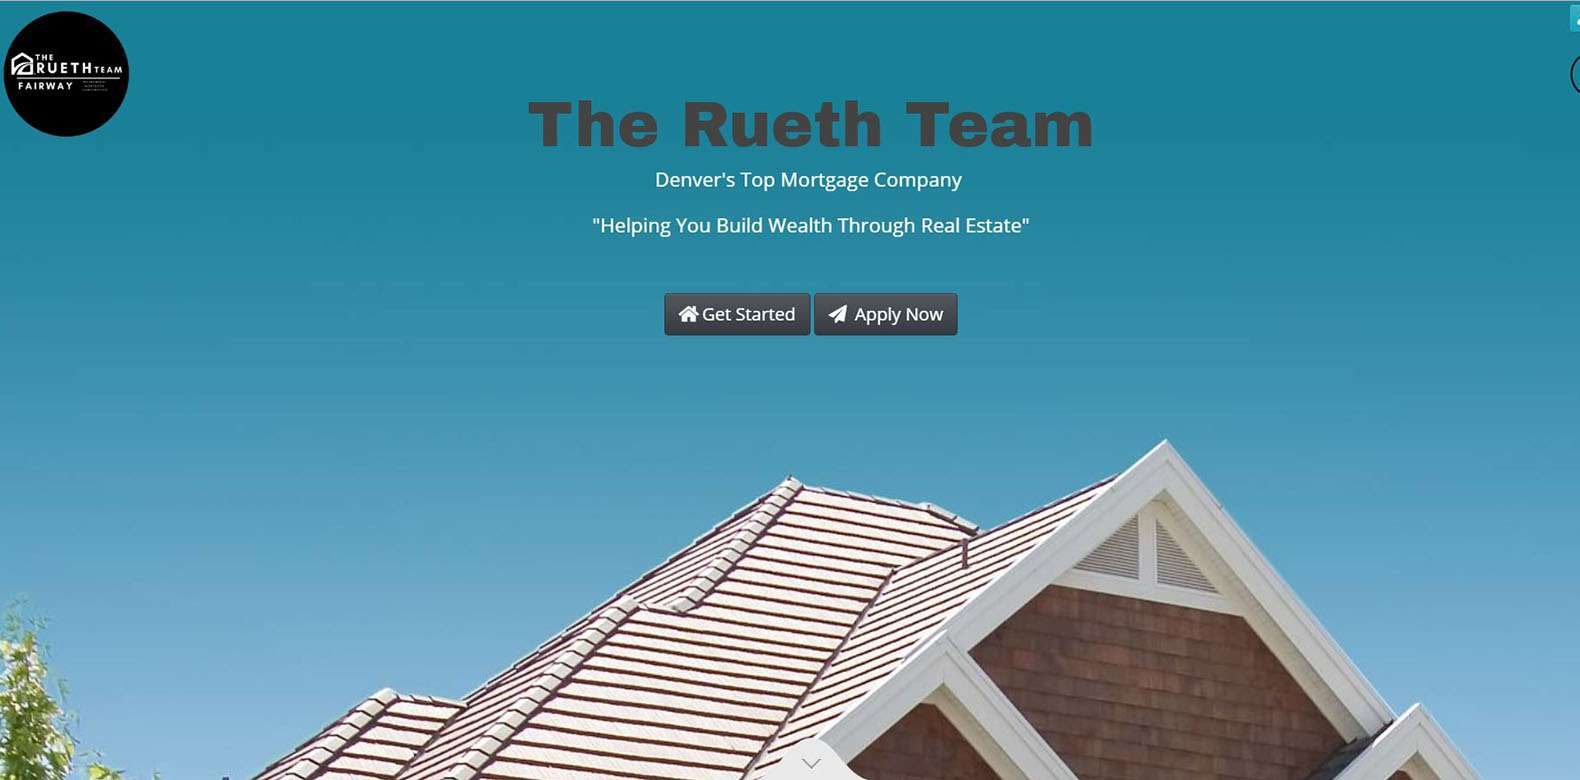 The-Rueth-Team-Denver-Website-Designs